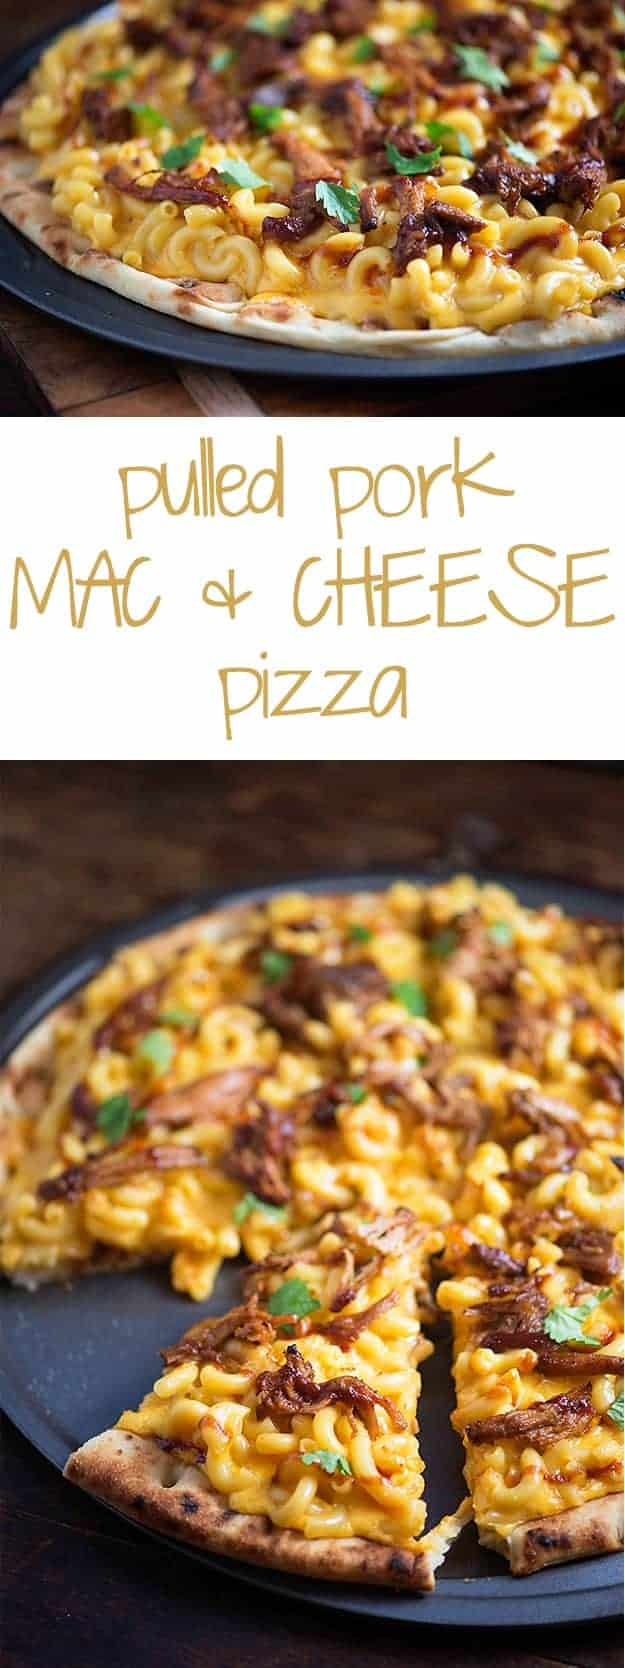 Pulled pork mac and cheese in a pizza pan.